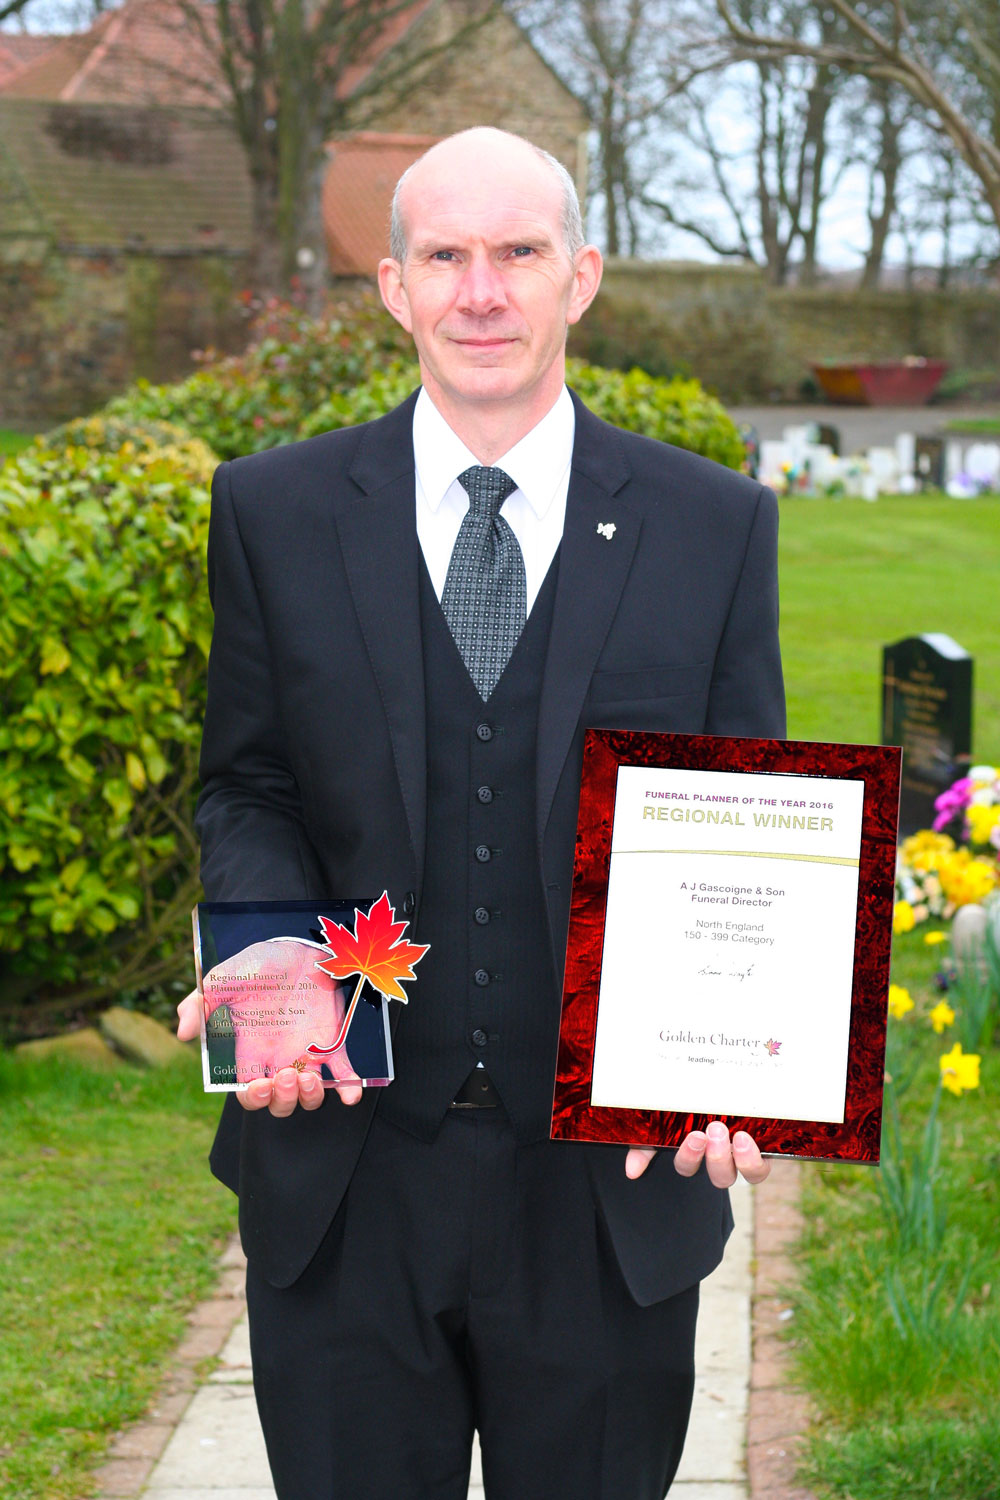 north-east-funeral-planner-2016-winner-jeff-gascoigne